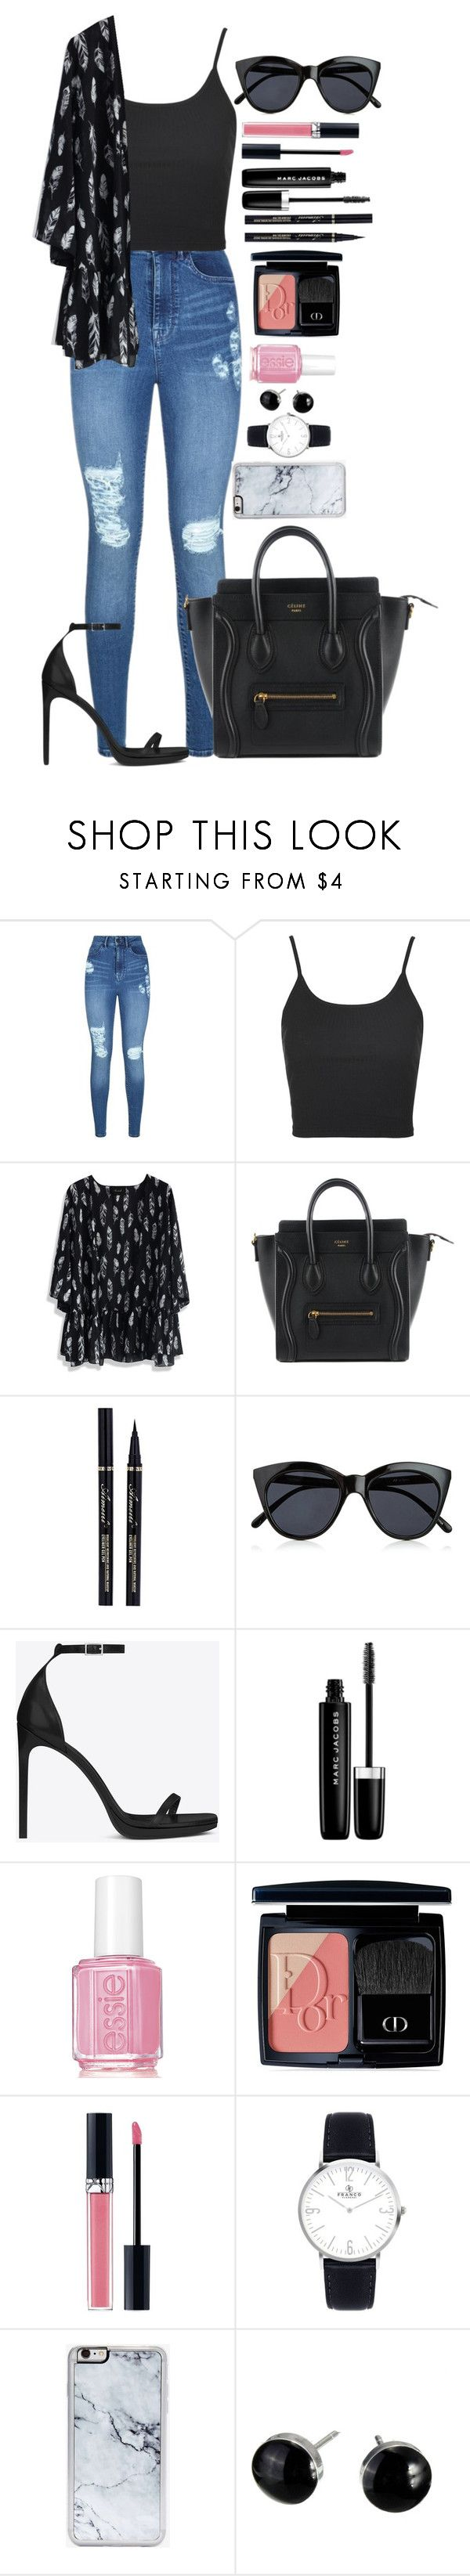 """""""Untitled #1472"""" by fabianarveloc on Polyvore featuring Lipsy, Topshop, Chicwish, Le Specs, Yves Saint Laurent, Marc Jacobs, Essie, Christian Dior and Zero Gravity"""